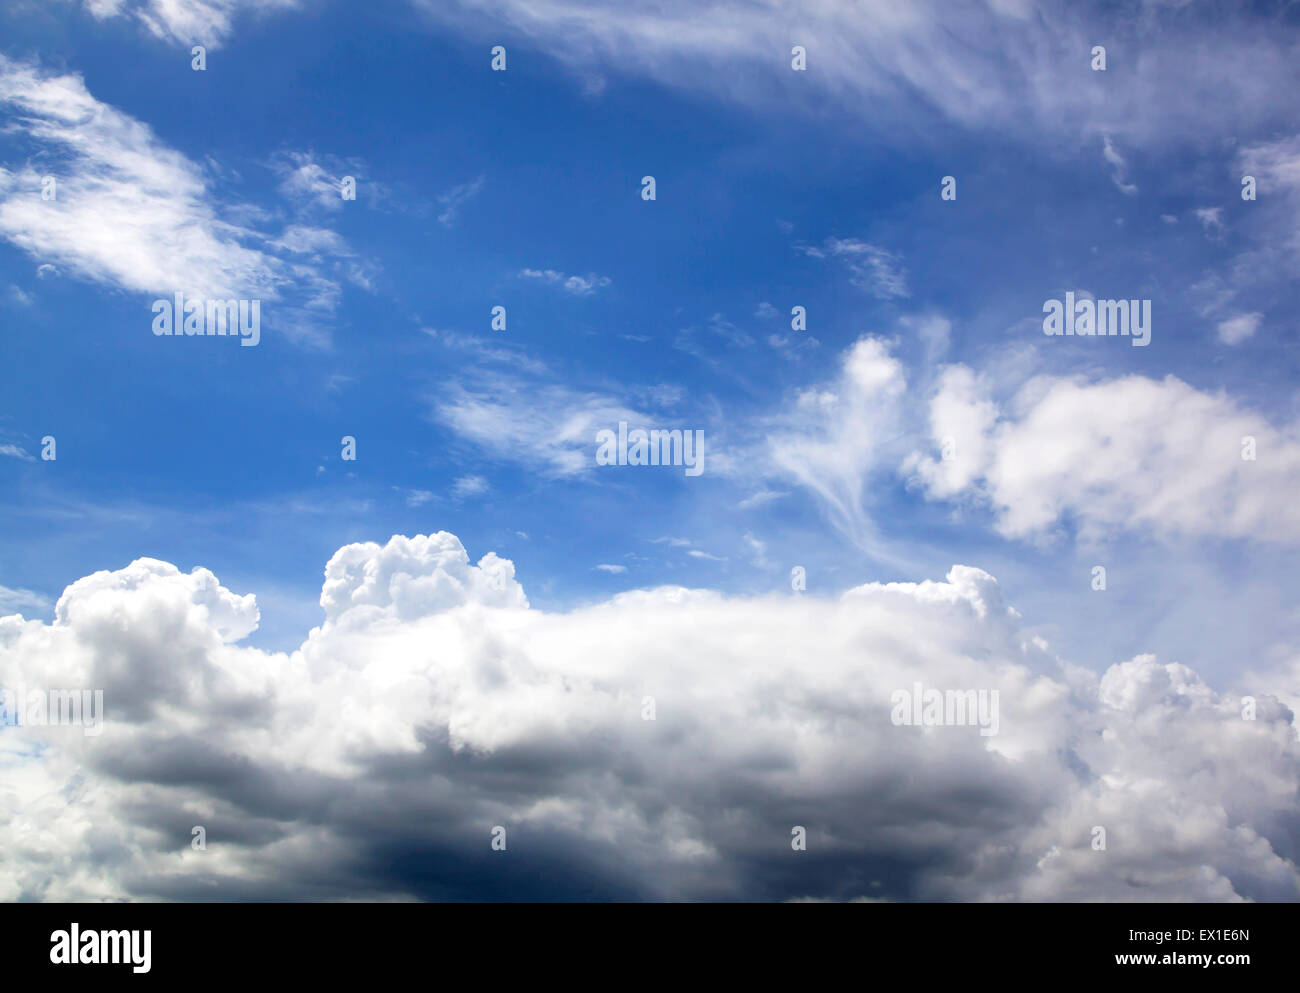 Blue sky fresh air nature abstract background ozone. - Stock Image